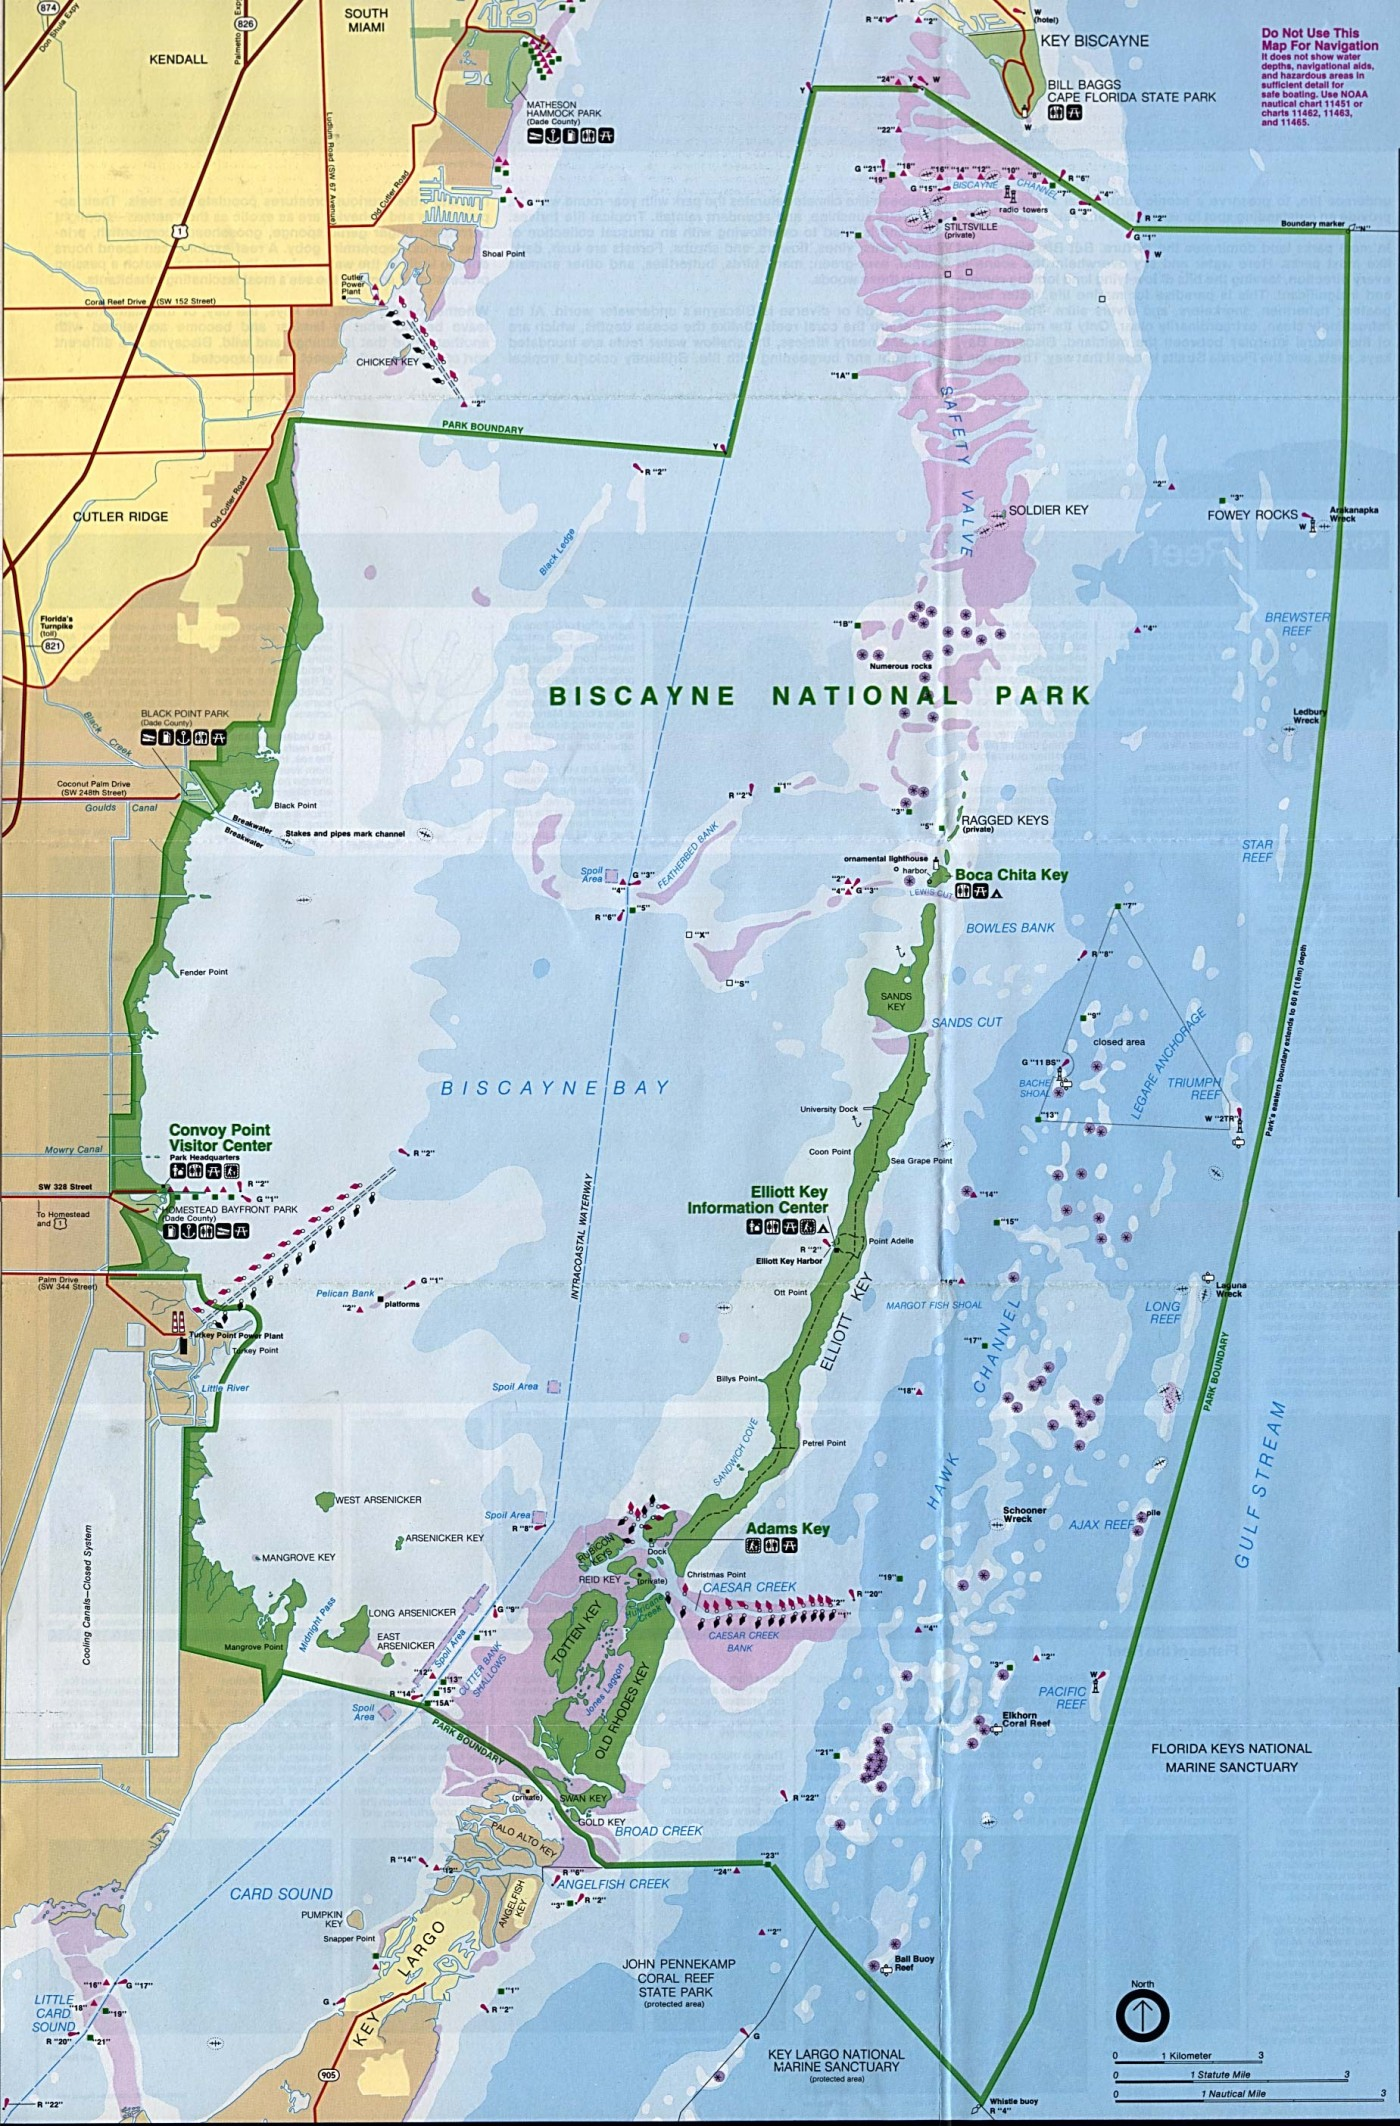 004 Biscayne National Park Map Essay Wonderful 1400